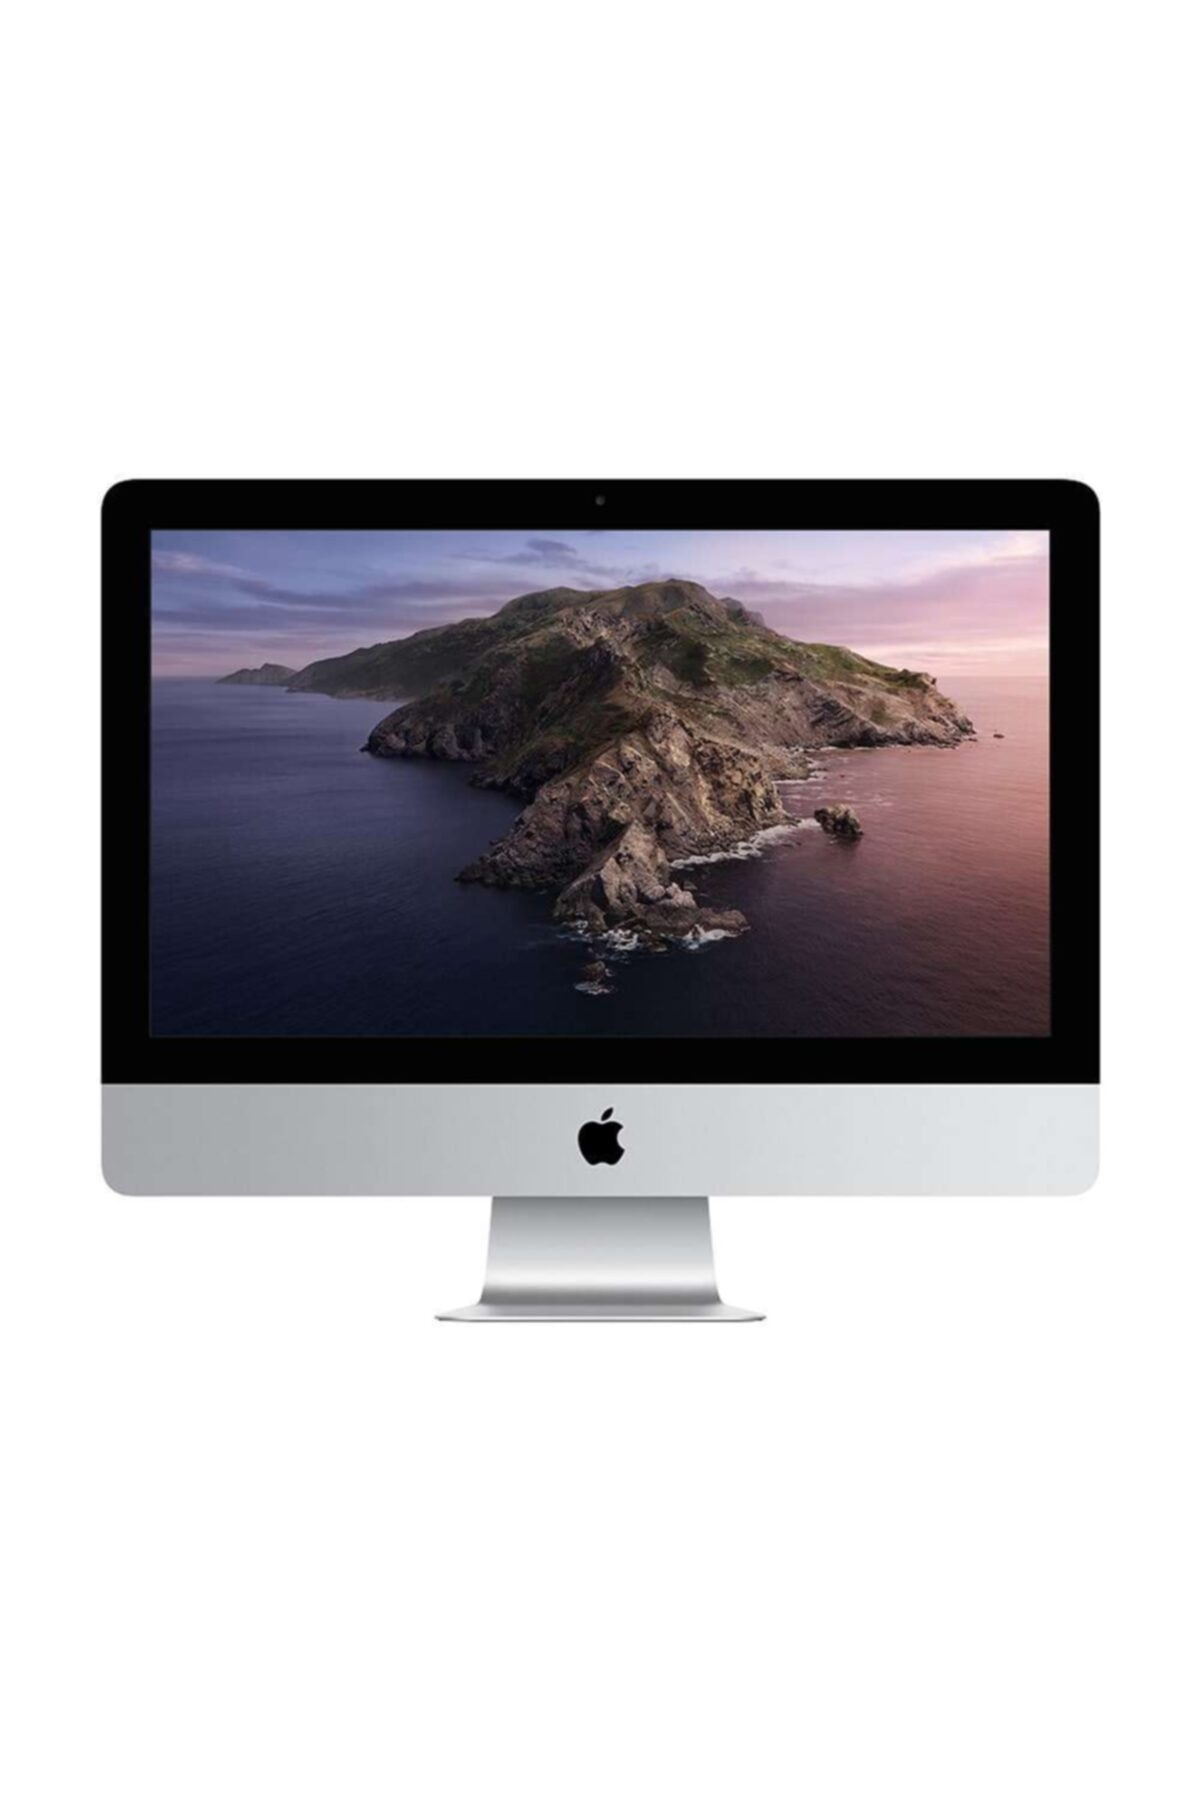 Apple Imac 21.5 Inç Dc I5 2.3ghz/8gb/256gb Ssd Intel Iris Plus 640 Mhk03tu/a 1